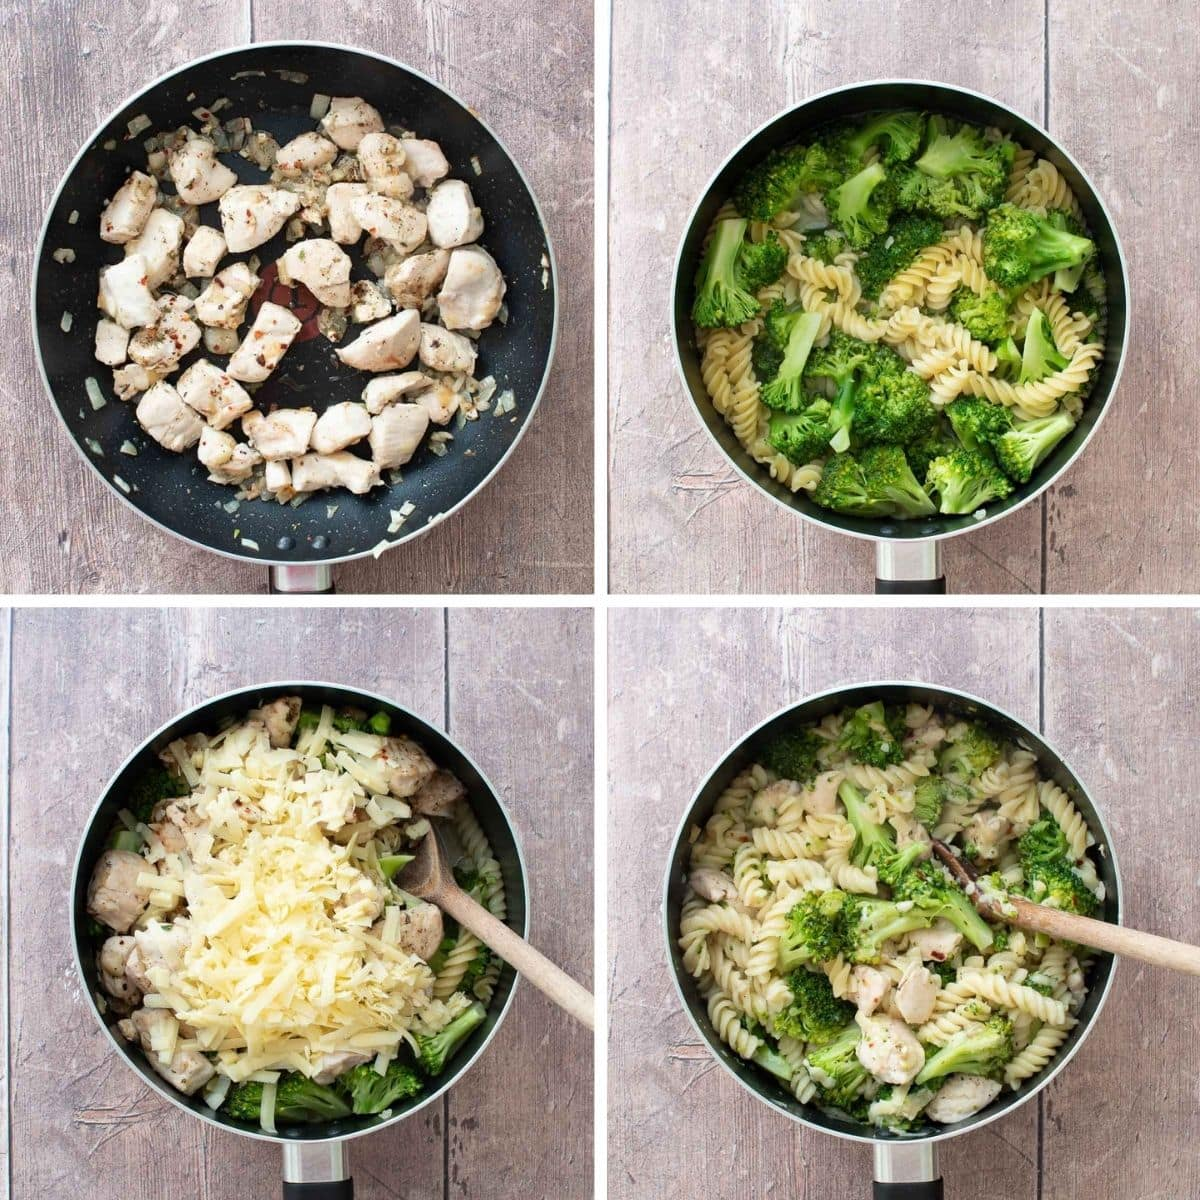 Step by step images showing how to make chicken broccoli pasta.